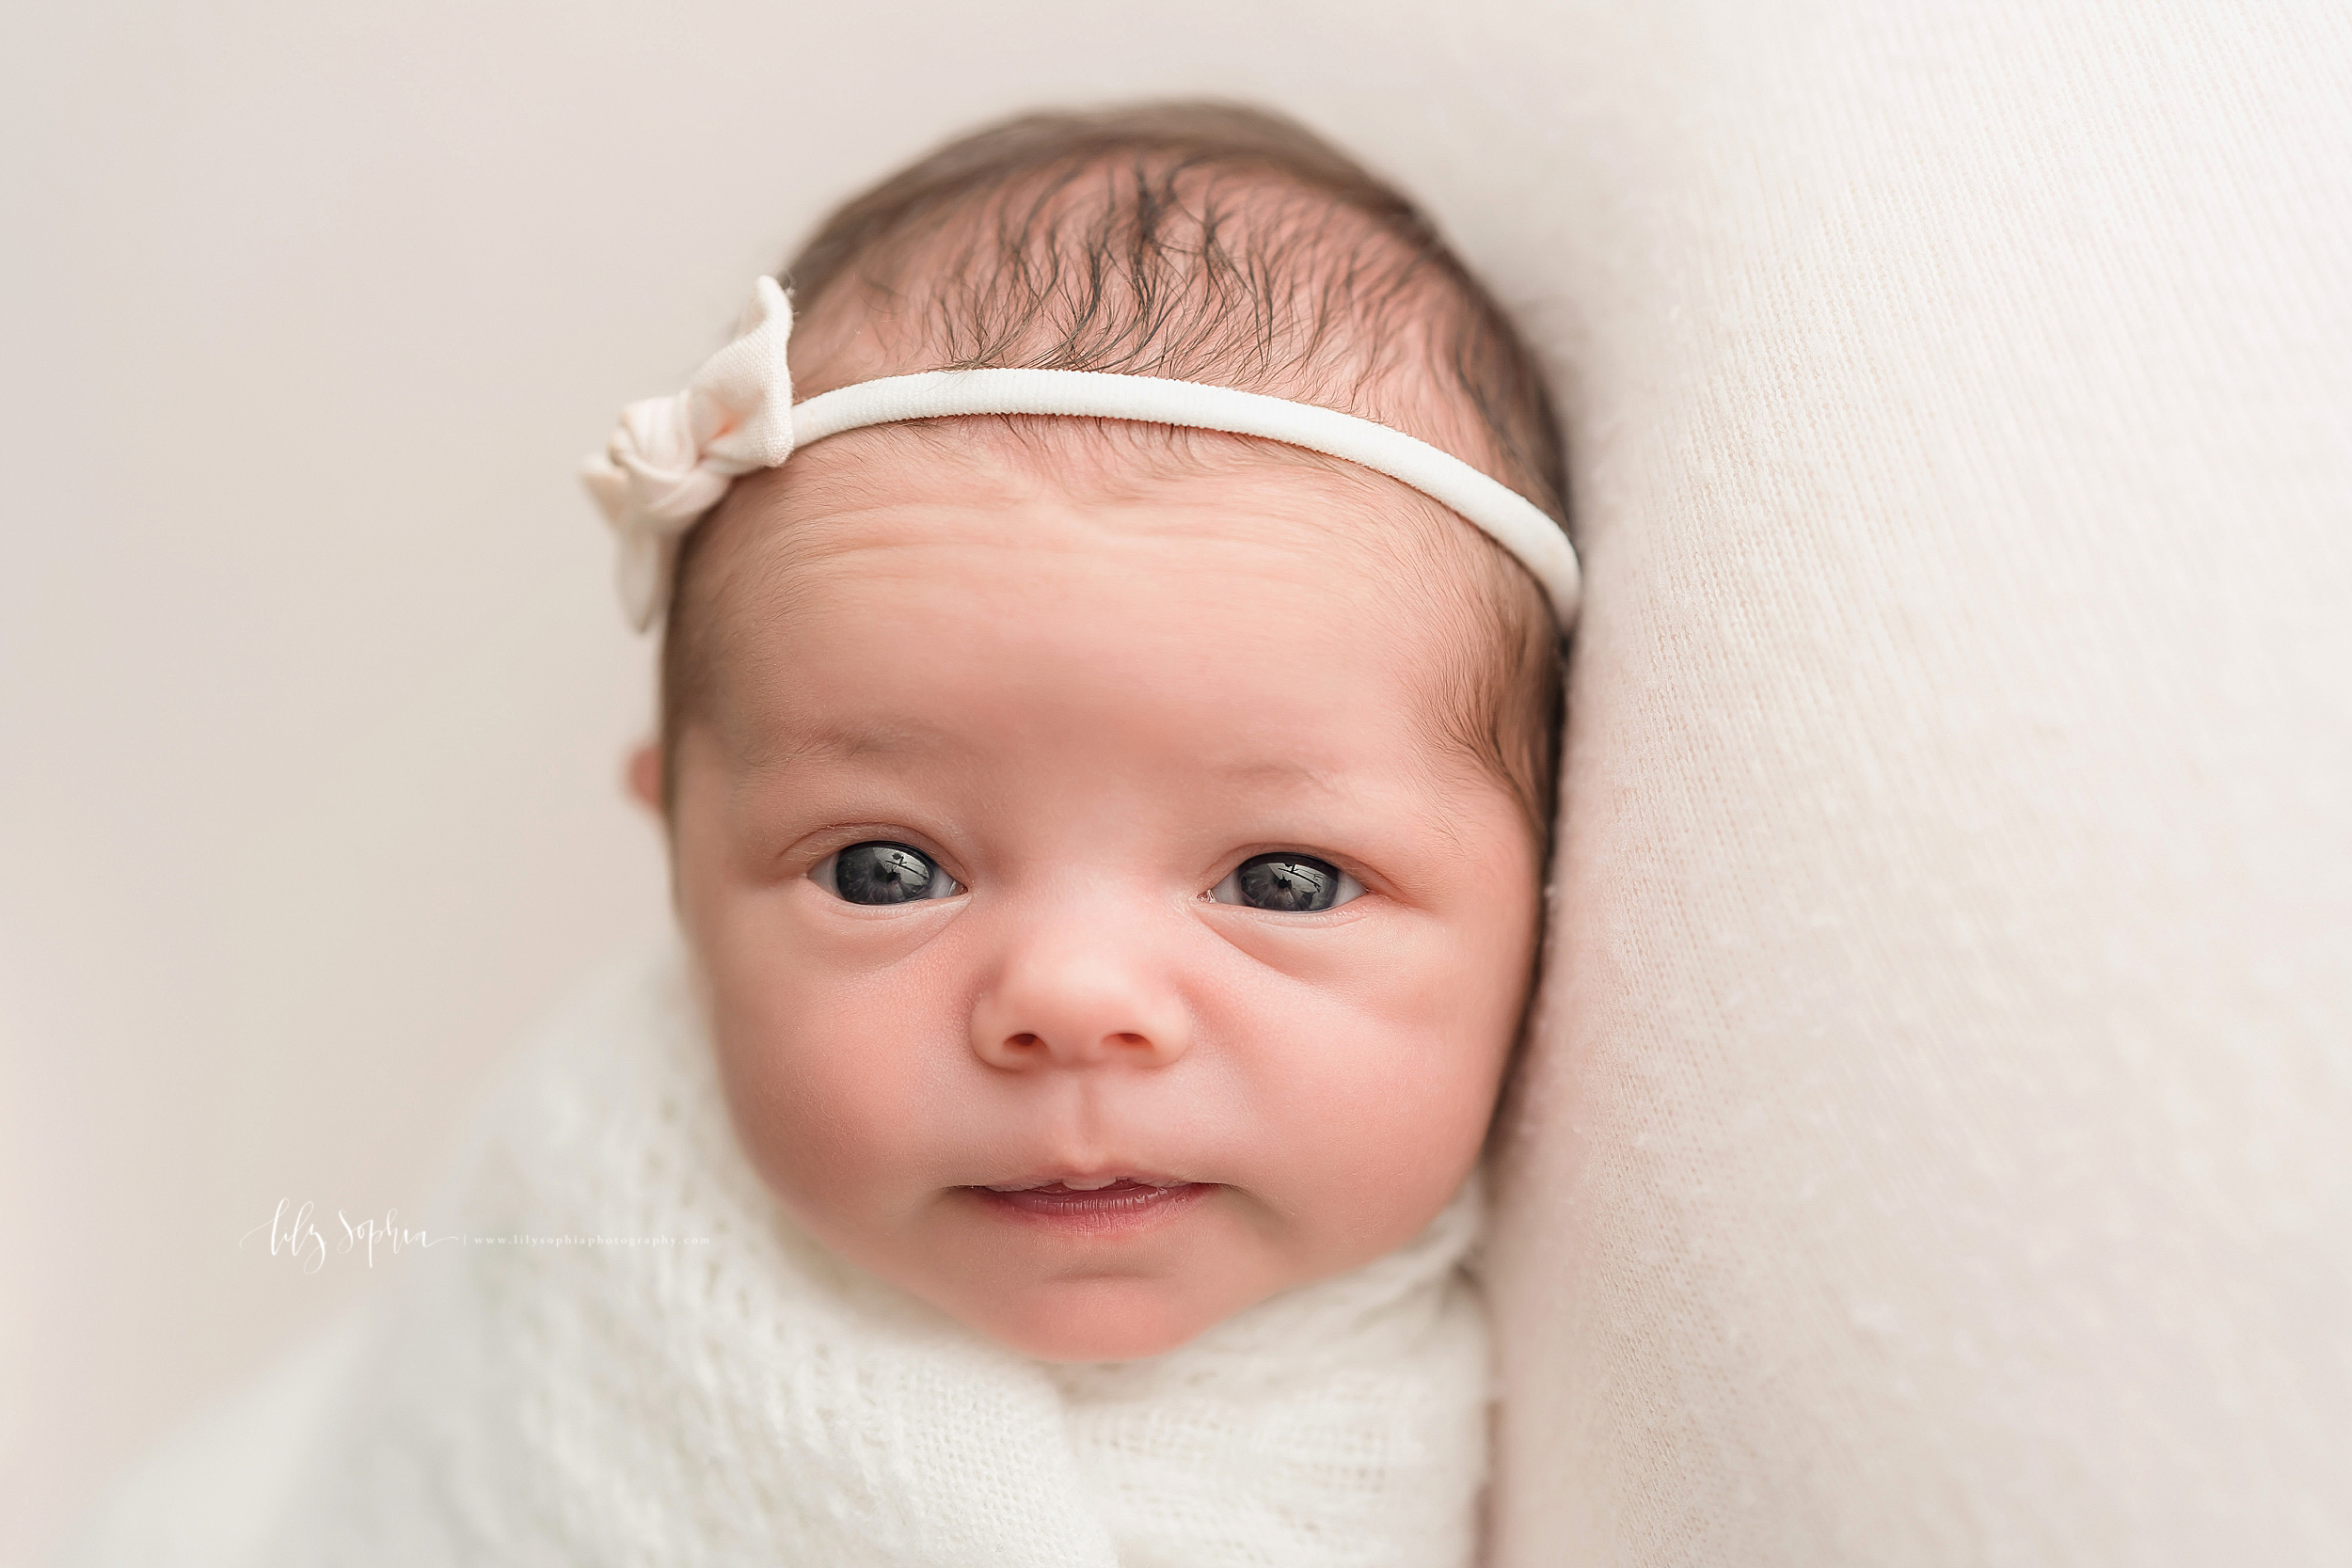 Newborn photo of a wide-eyed infant girl who is wrapped in a soft white knit blanket and is wearing a pink headband with a bow as she lays in a natural light Atlanta studio.